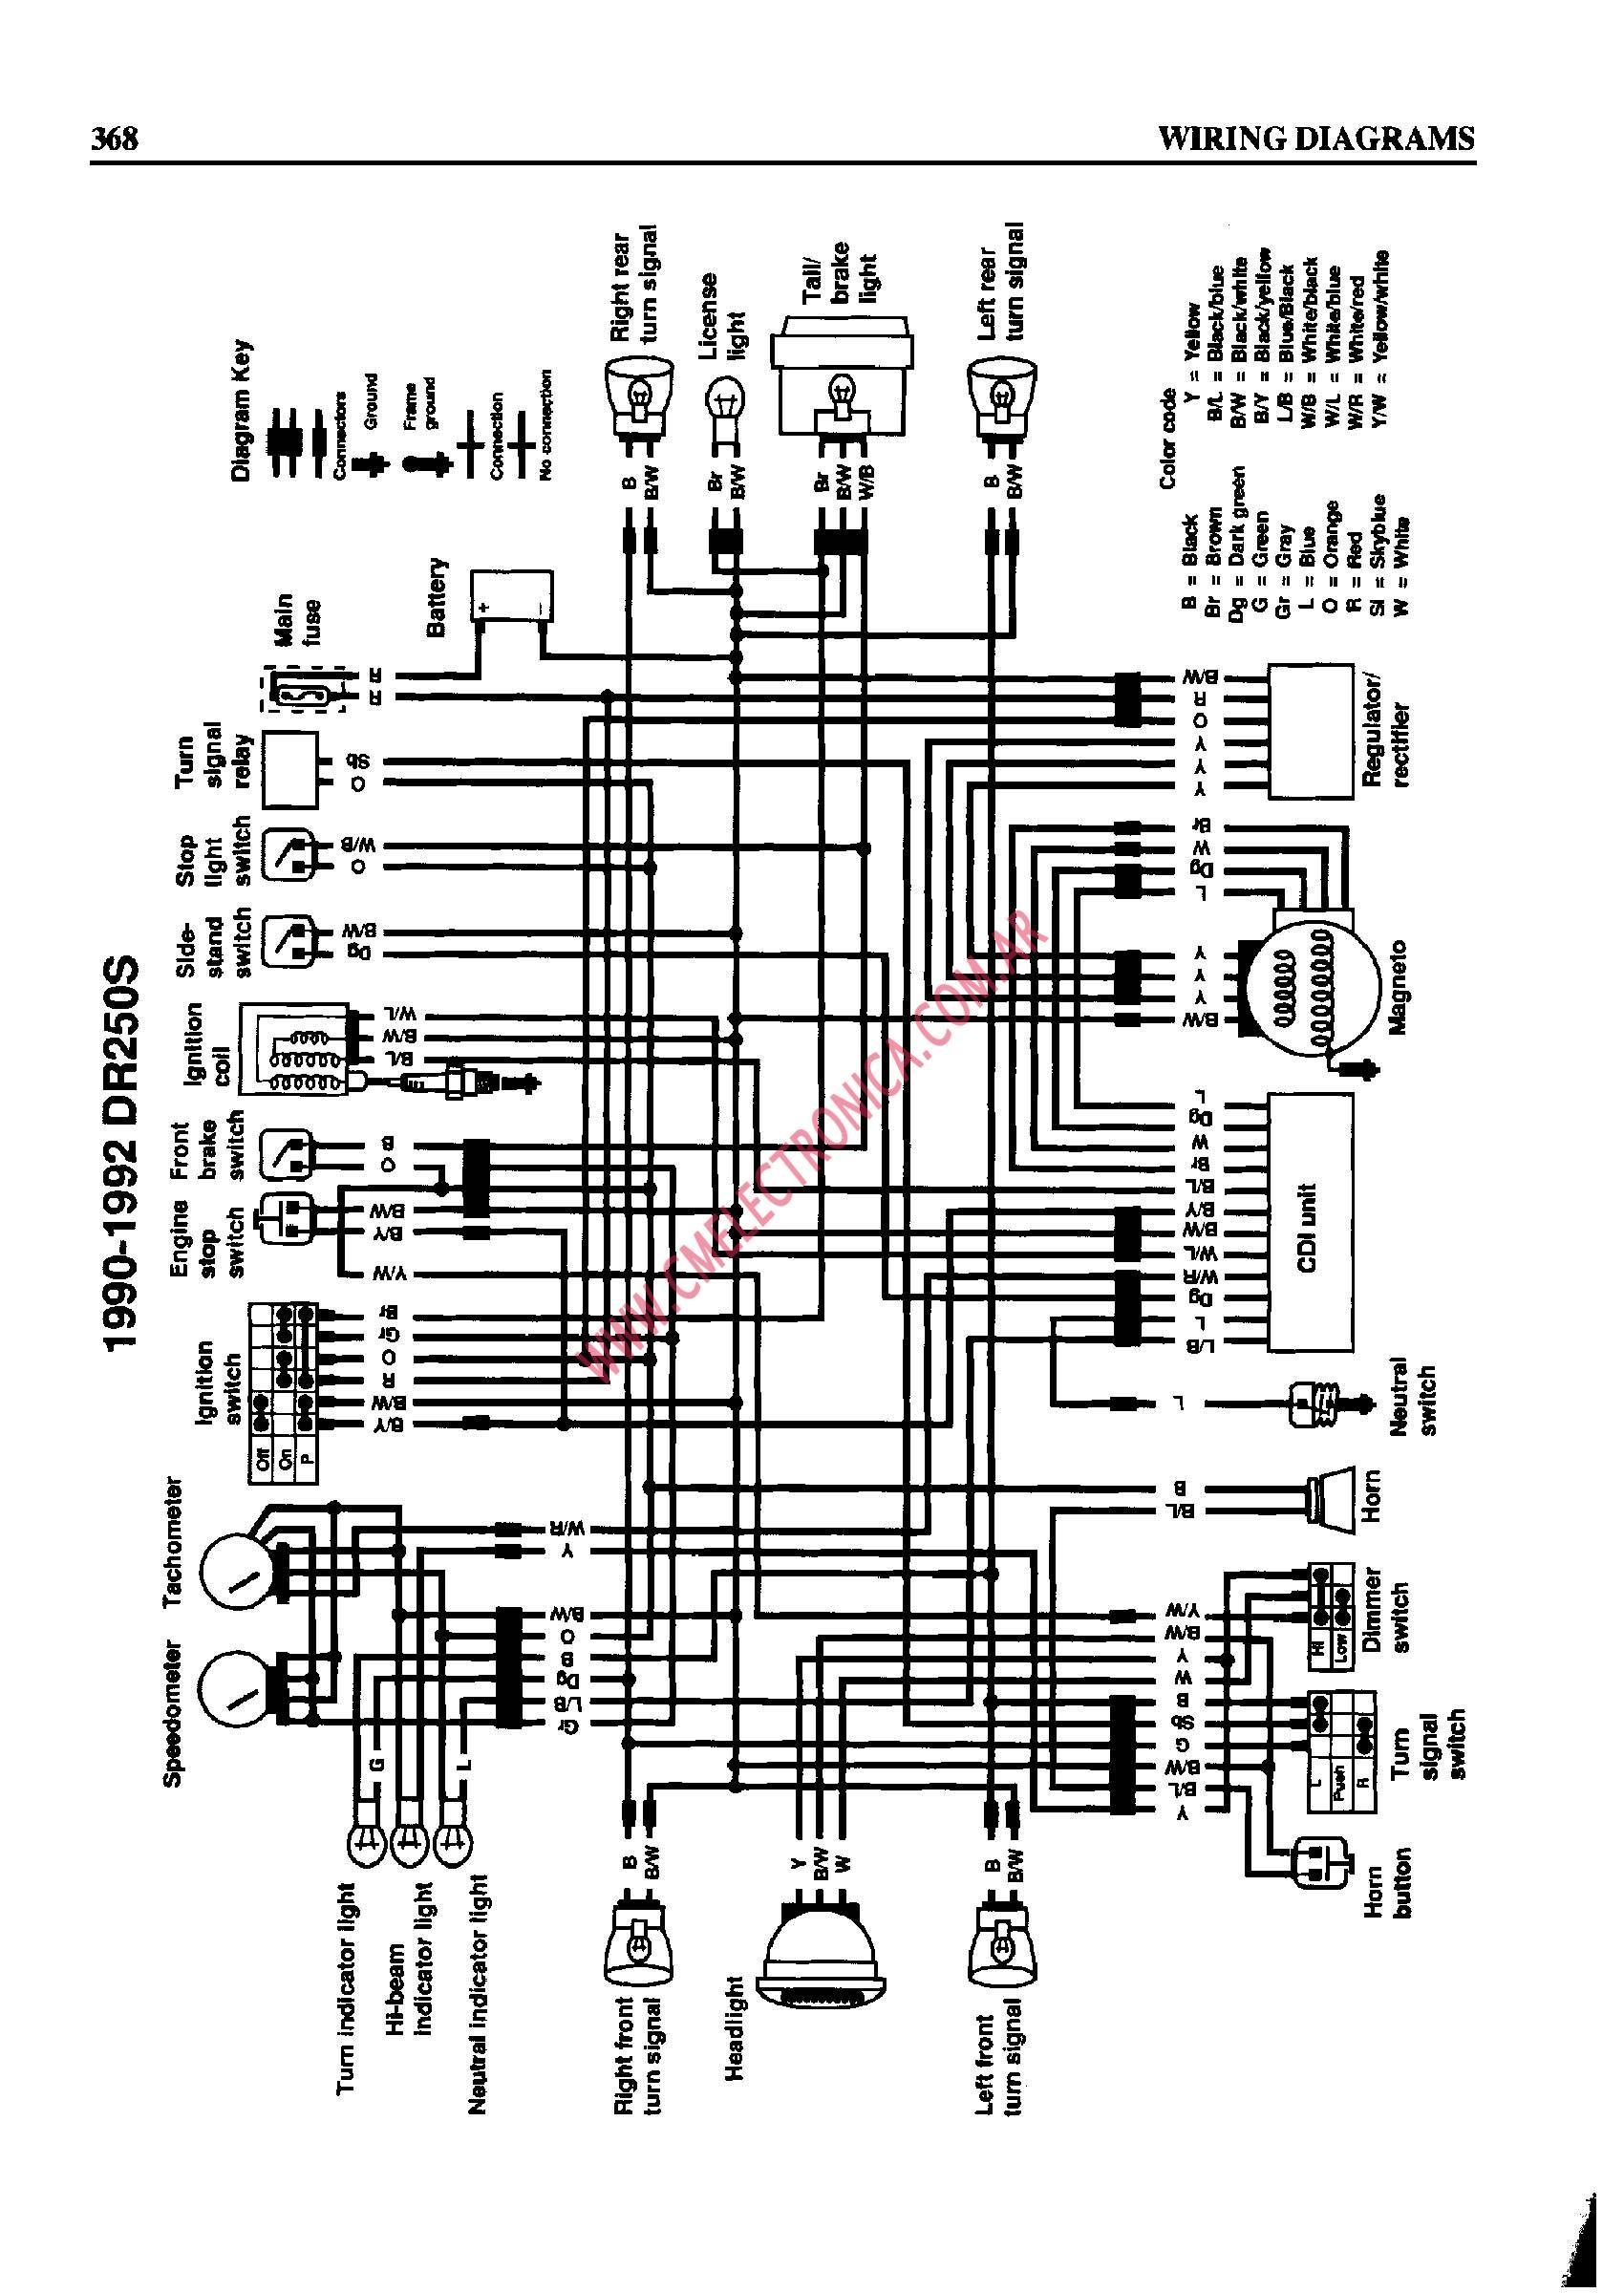 Dr250s Wiring Diagram - ghirardellimarco.it symbol-vision -  symbol-vision.ghirardellimarco.itdiagram database - ghirardellimarco.it